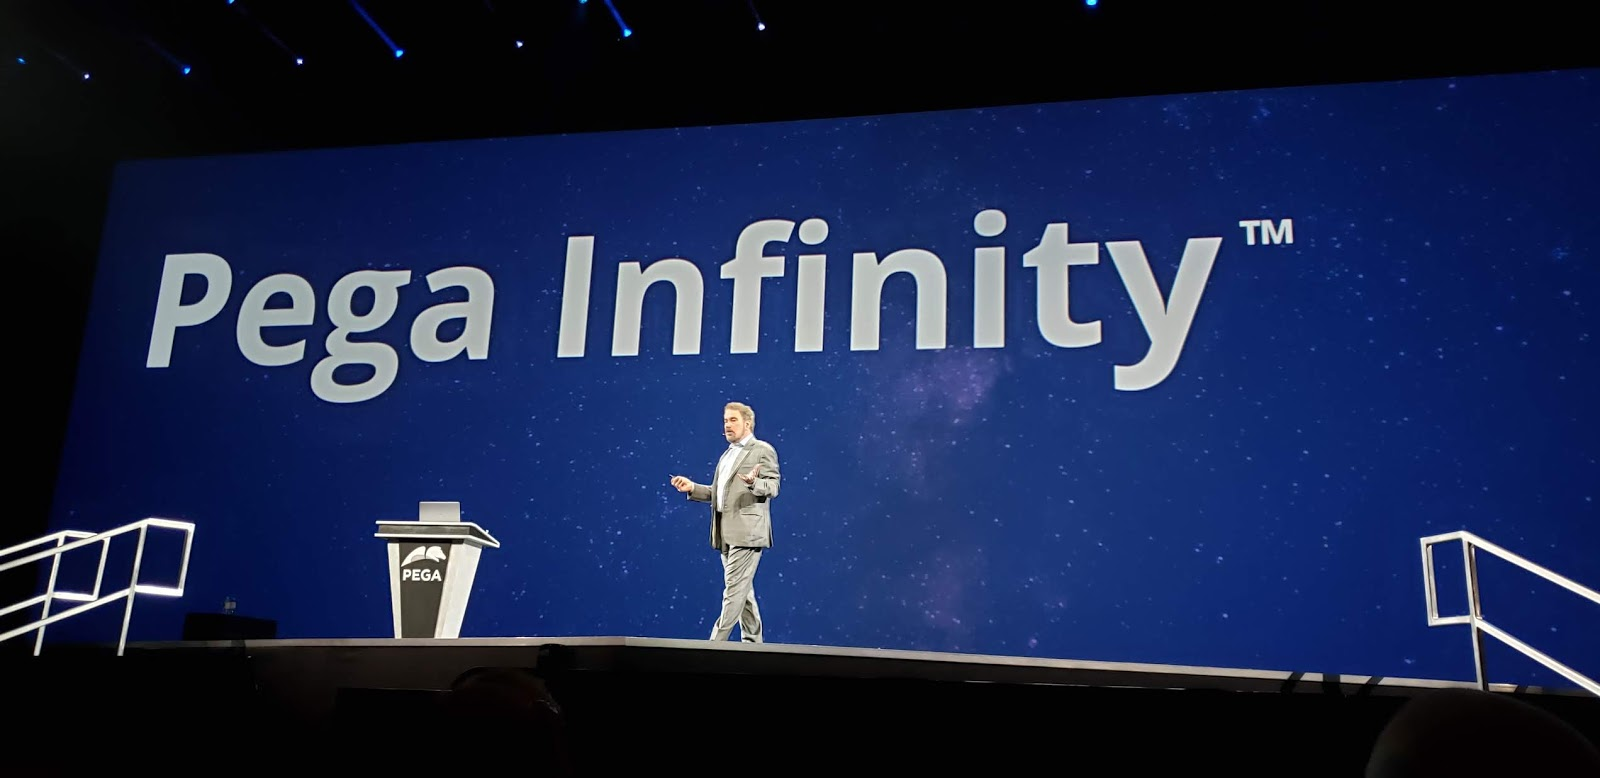 Pegaworld 2019: To Infinity and Beyond with Digital Super Heroes